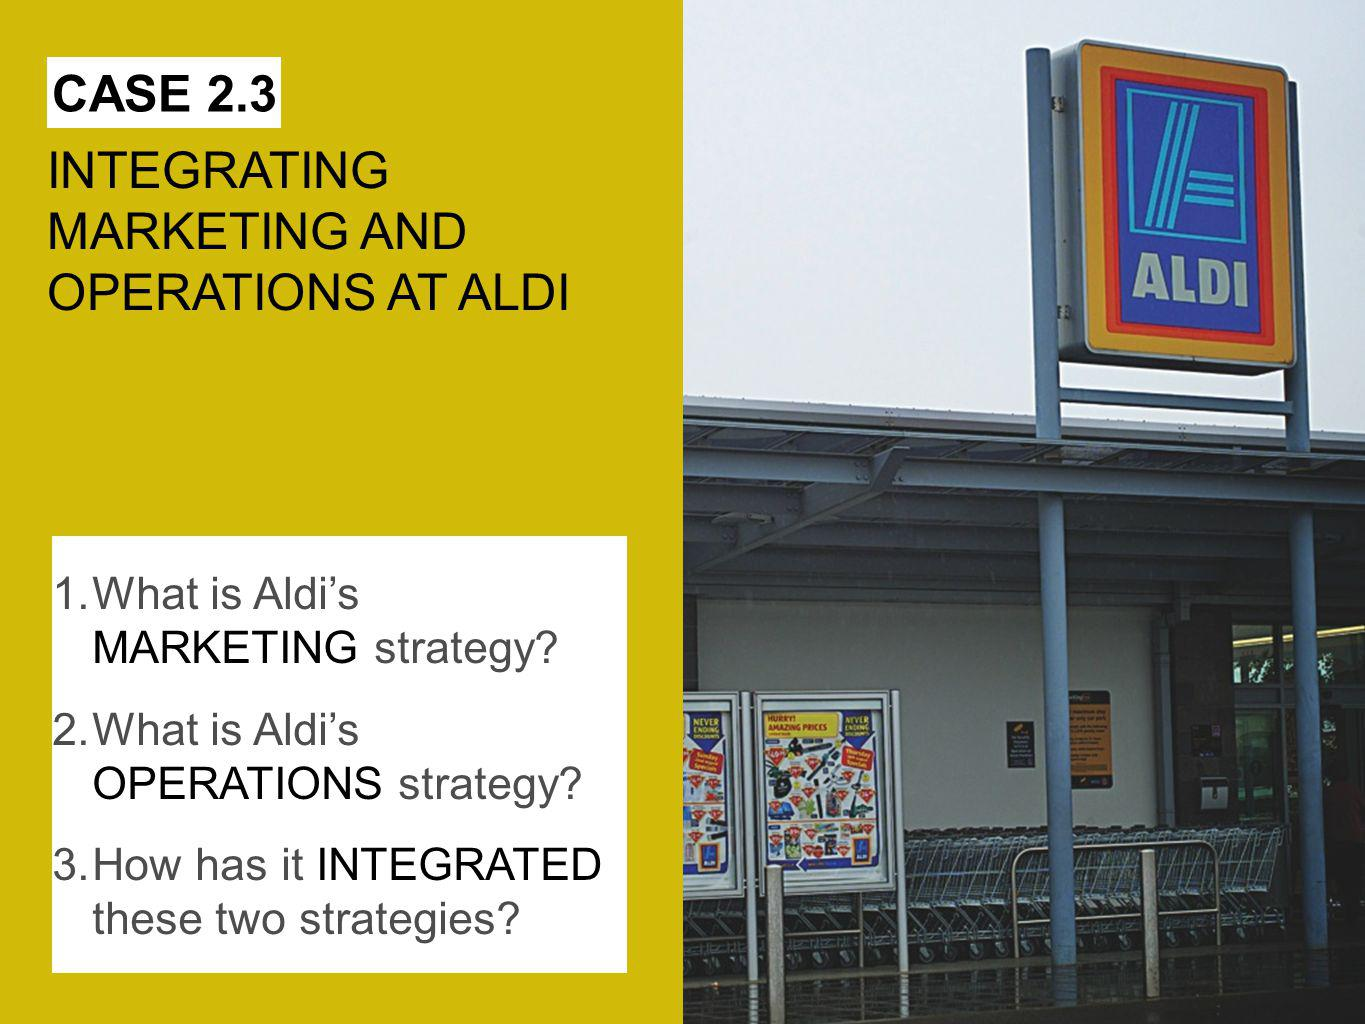 INTEGRATING MARKETING AND OPERATIONS AT ALDI